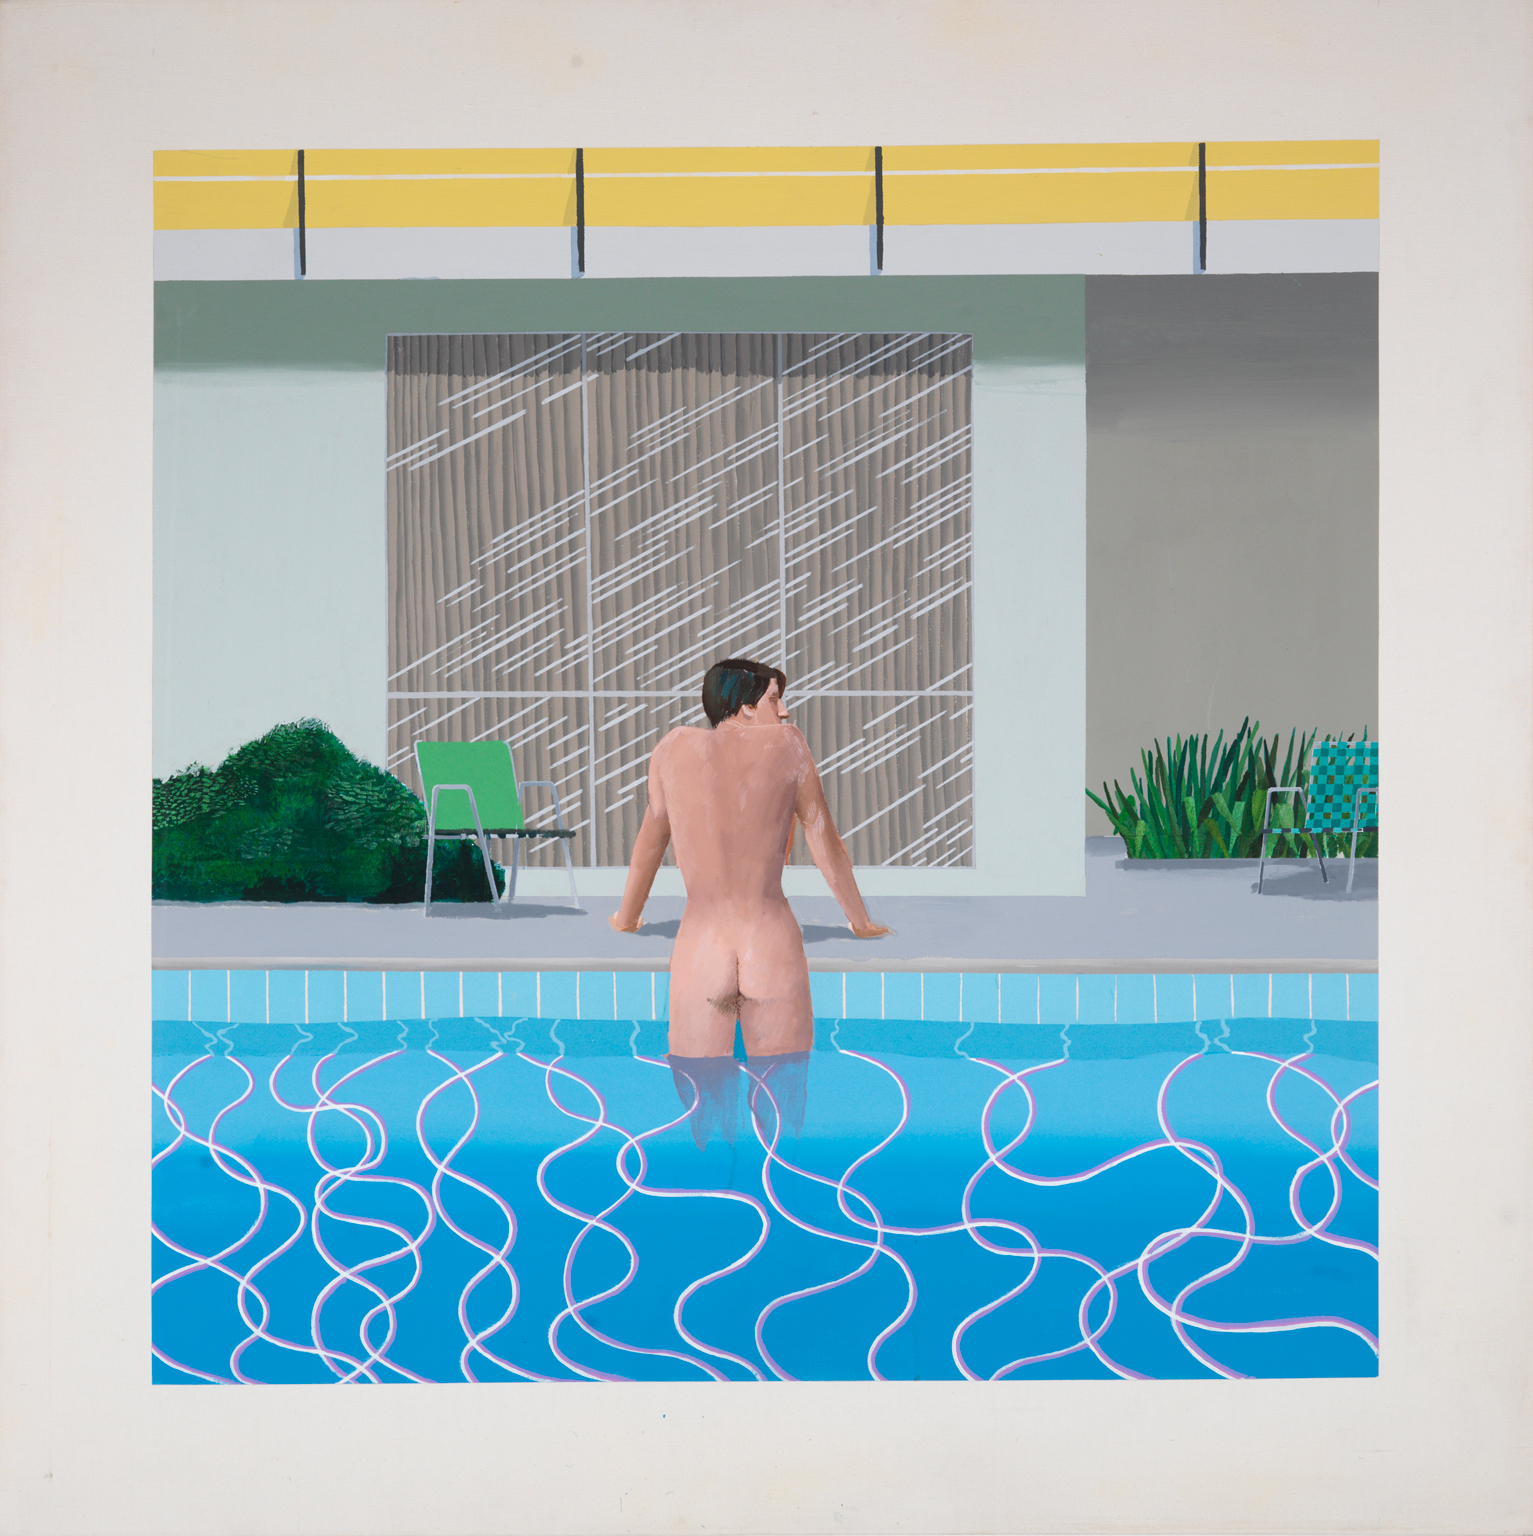 Art lies and film docs artillery magazine - David hockney swimming pool paintings ...